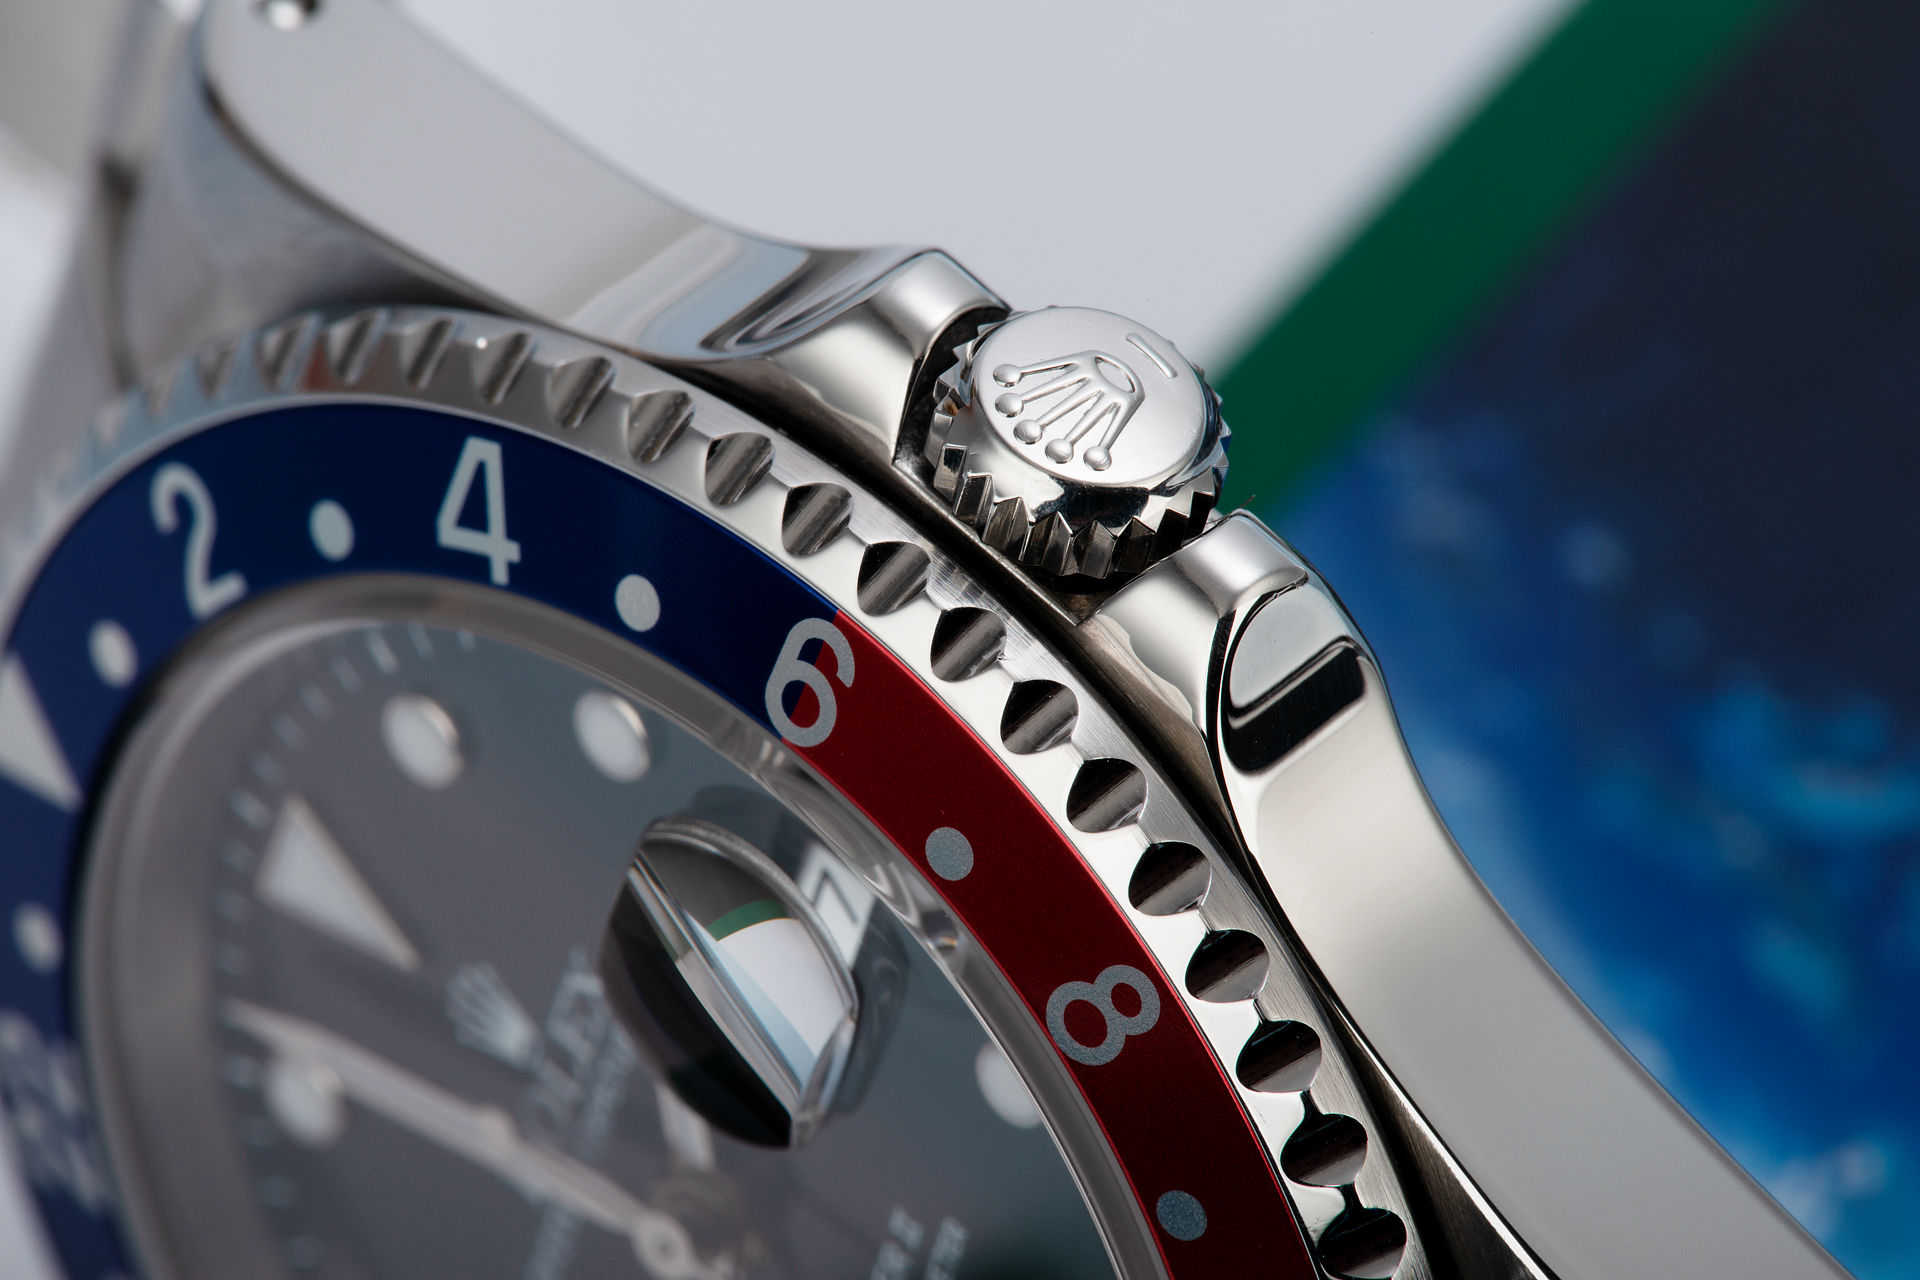 ref 16710 | 'Full Set' A-Series | Rolex GMT-Master II